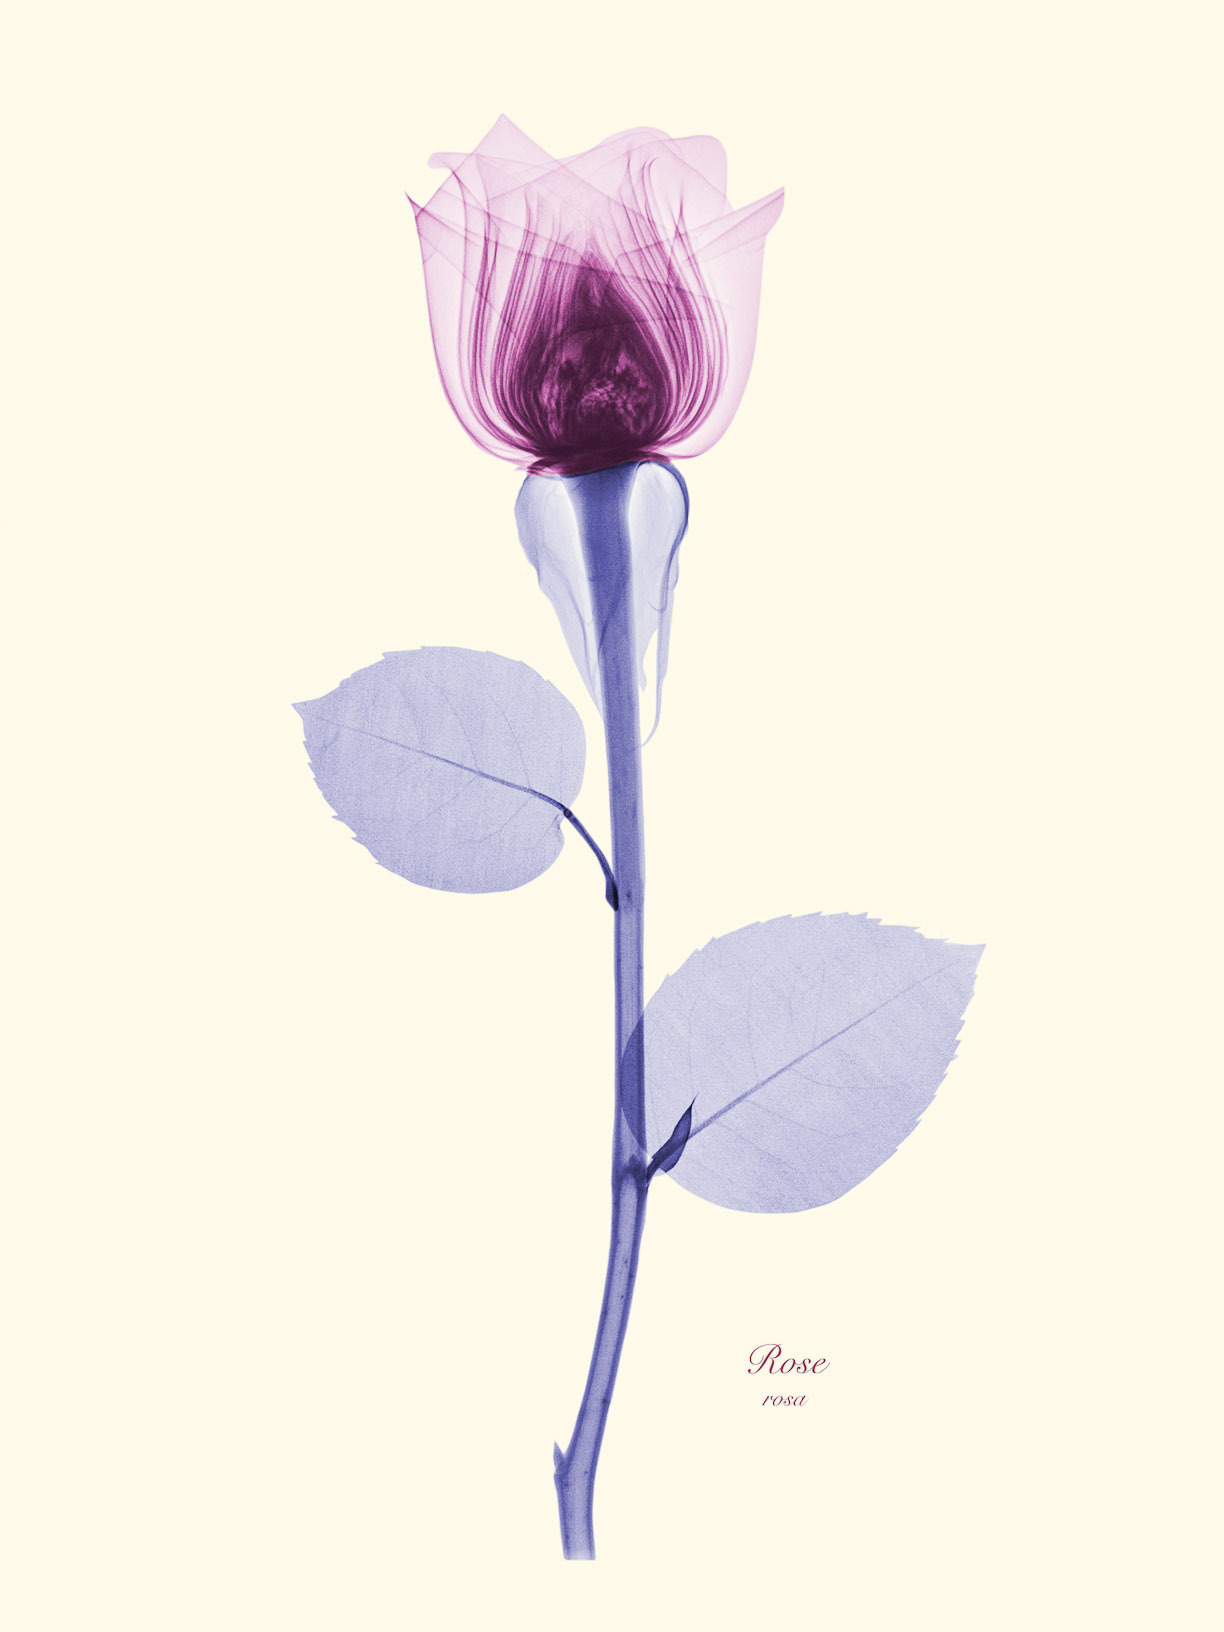 The Floral X-rays of Brendan Fitzpatrick are just breathtaking. Check out more at the link. Nature is full of numerical and geometric patterns, some we can see from the outside and some require that we take on a new perspective (just look at how those rose petals are stacked!!). Some of those patterns are probably coincidental, but some of them are likely a result of nature's inner workings. Want to explore more? Take a ride with Vi Hart through the mathematical patterns of pinecones, pineapples and flowers. And then discover the multitudes of mathematical patterns in nature with Cristóbal Vila's amazing video Nature by Numbers. What do you think? Are these patterns coincidental or are they proof of some inherent design rules in biology and nature?